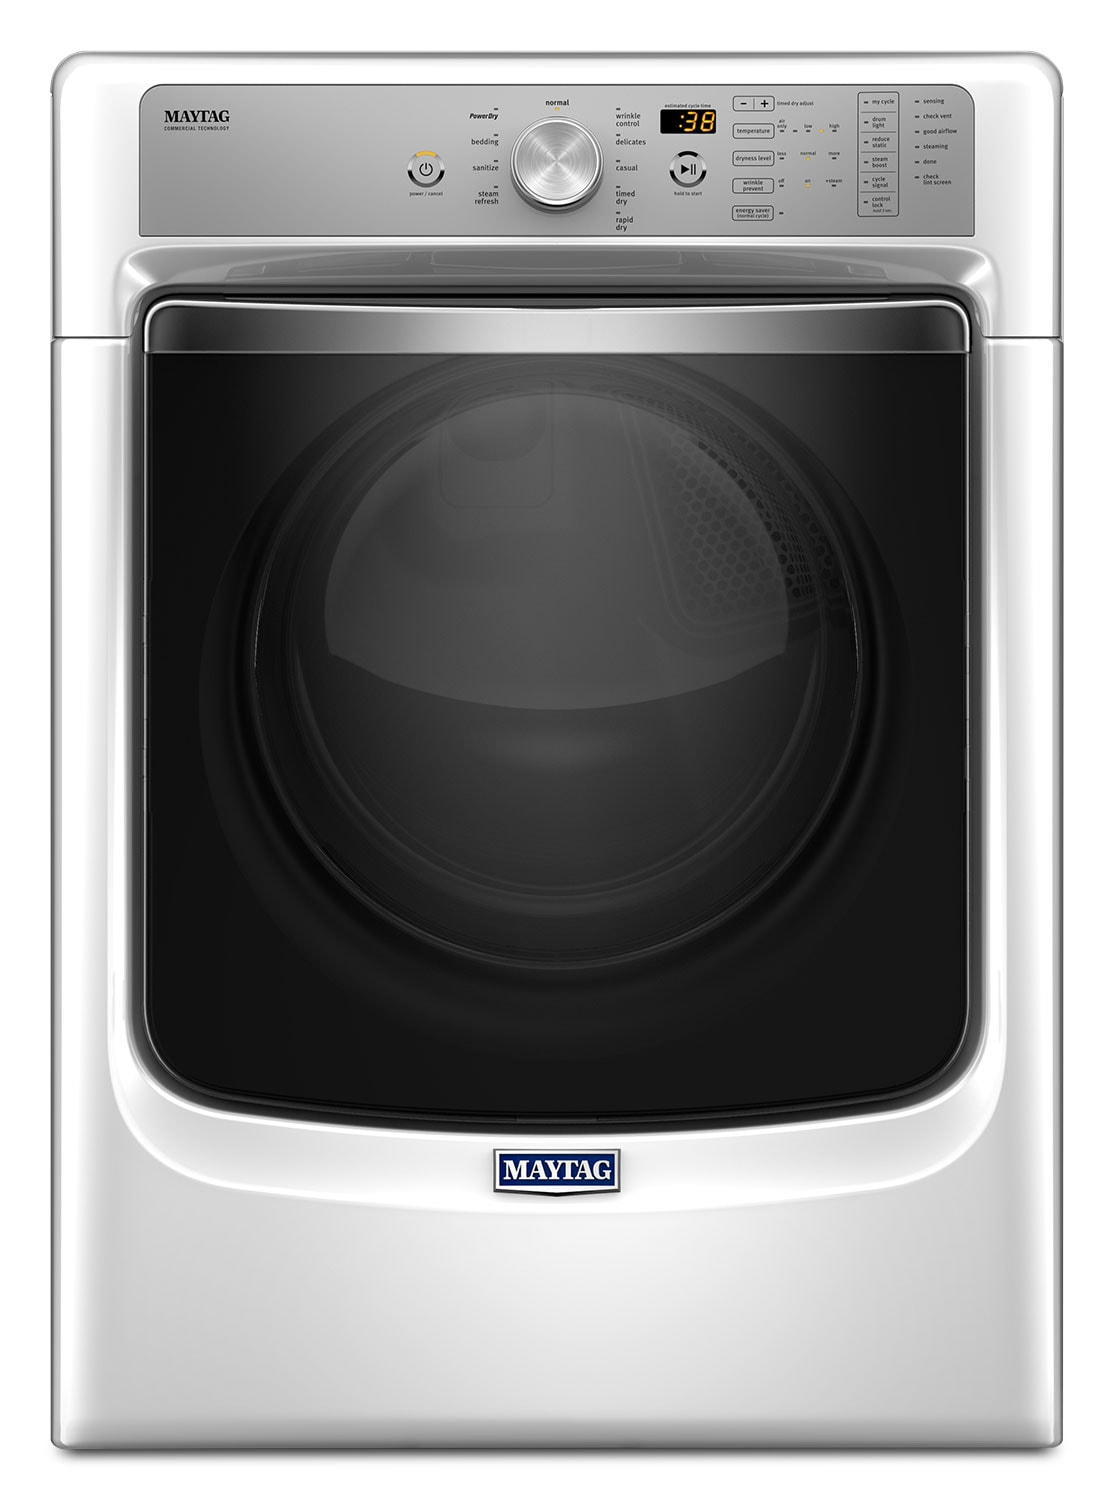 Maytag White Dryer w/ PowerDry System (7.4 Cu. Ft.) - YMED8200FW